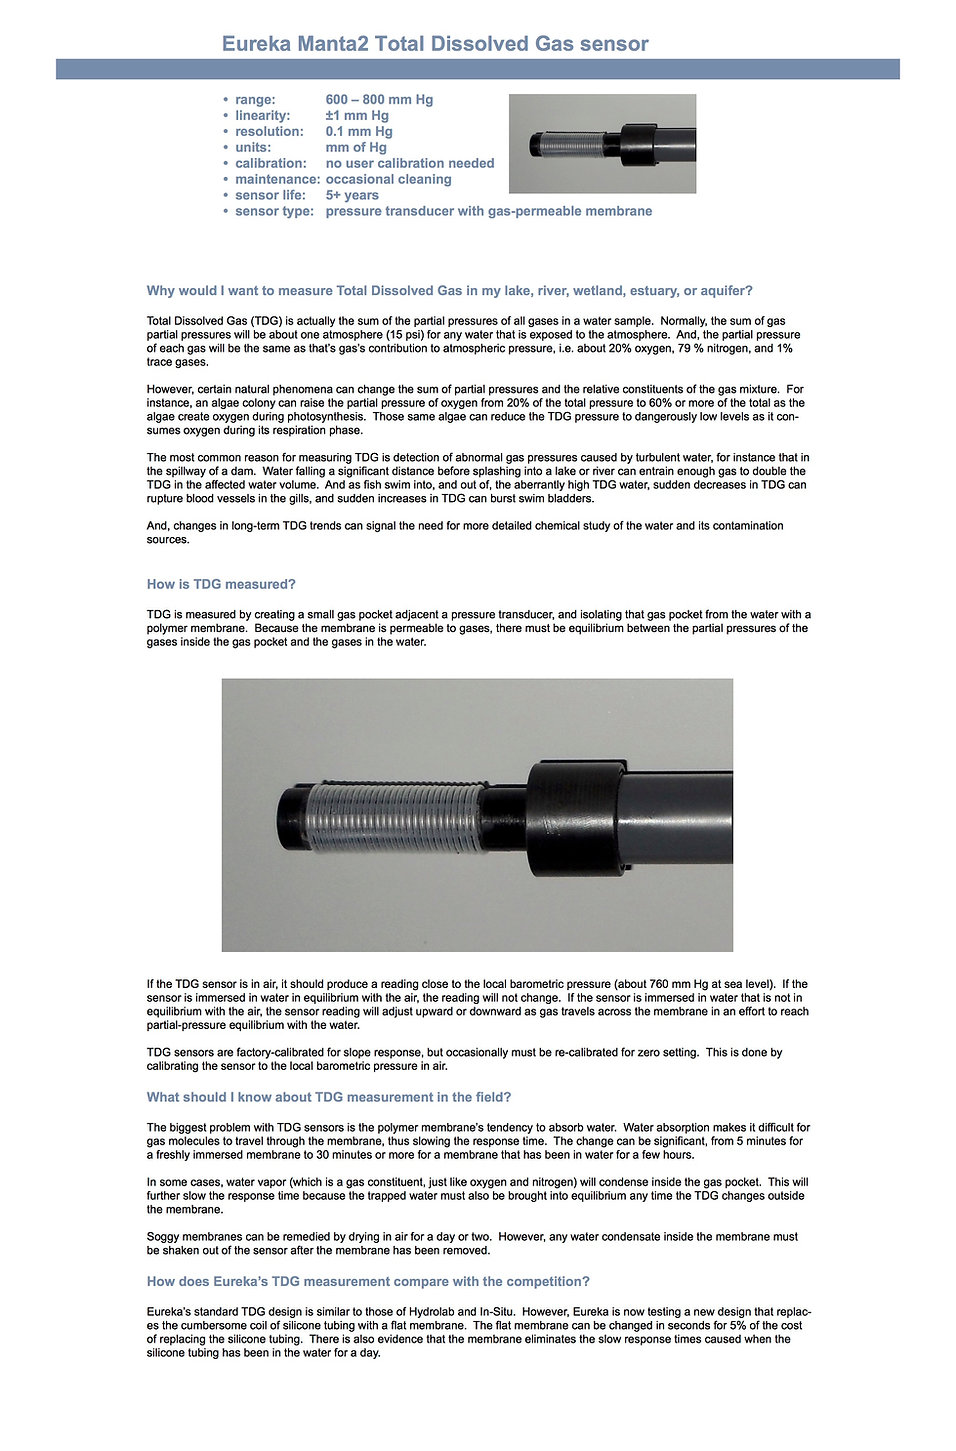 Total Dissolved Gas sensor information and specifications